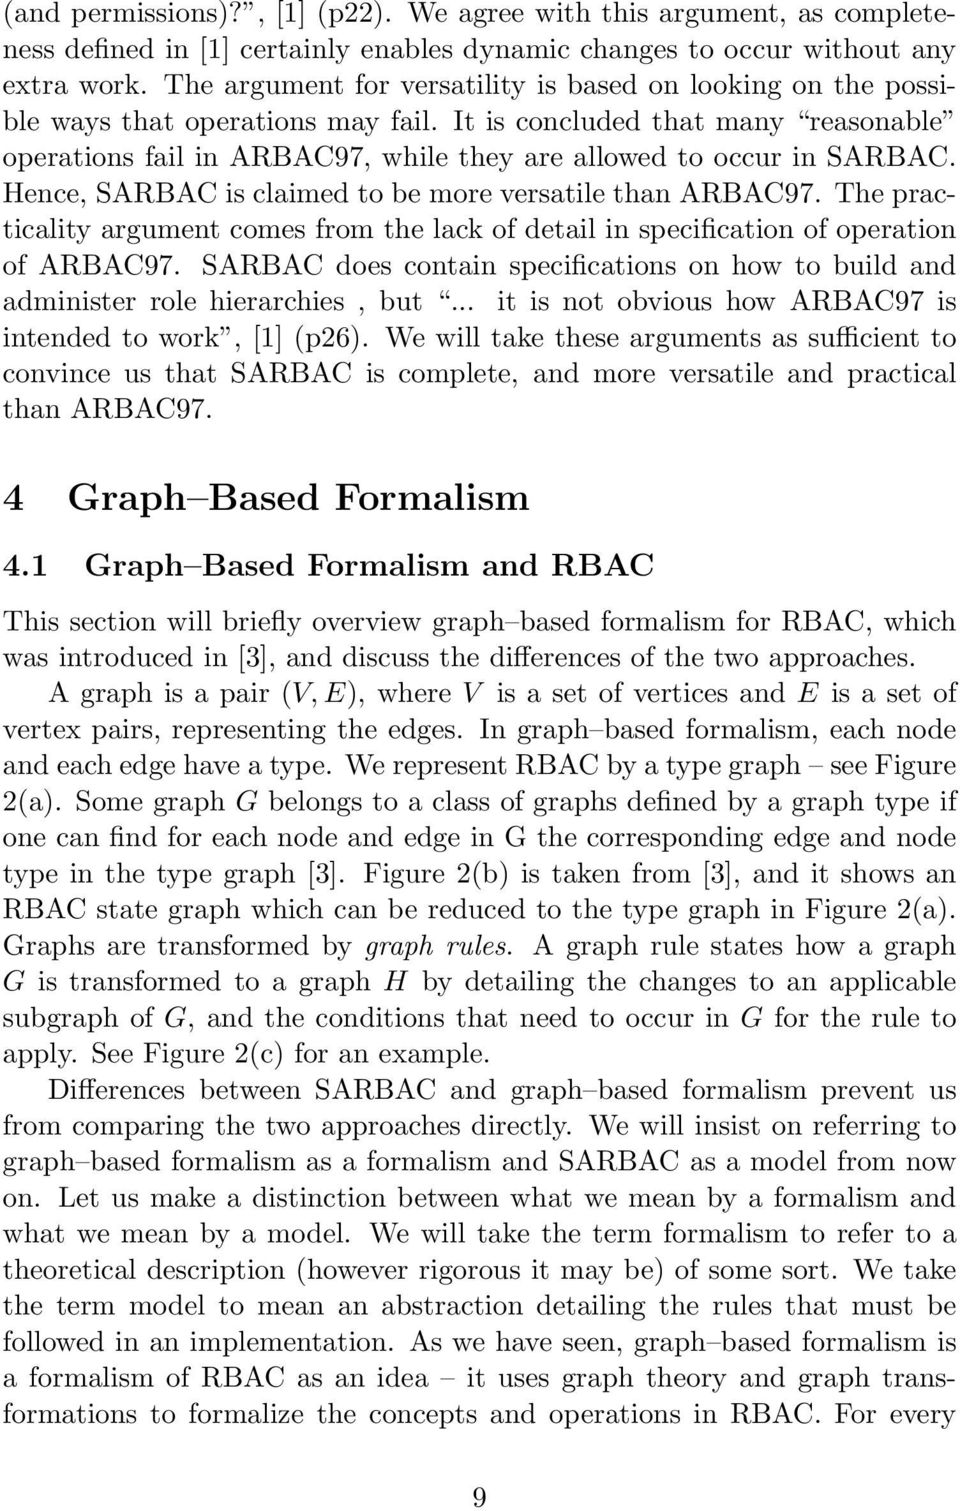 It is concluded that many reasonable operations fail in ARBAC97, while they are allowed to occur in SARBAC. Hence, SARBAC is claimed to be more versatile than ARBAC97.